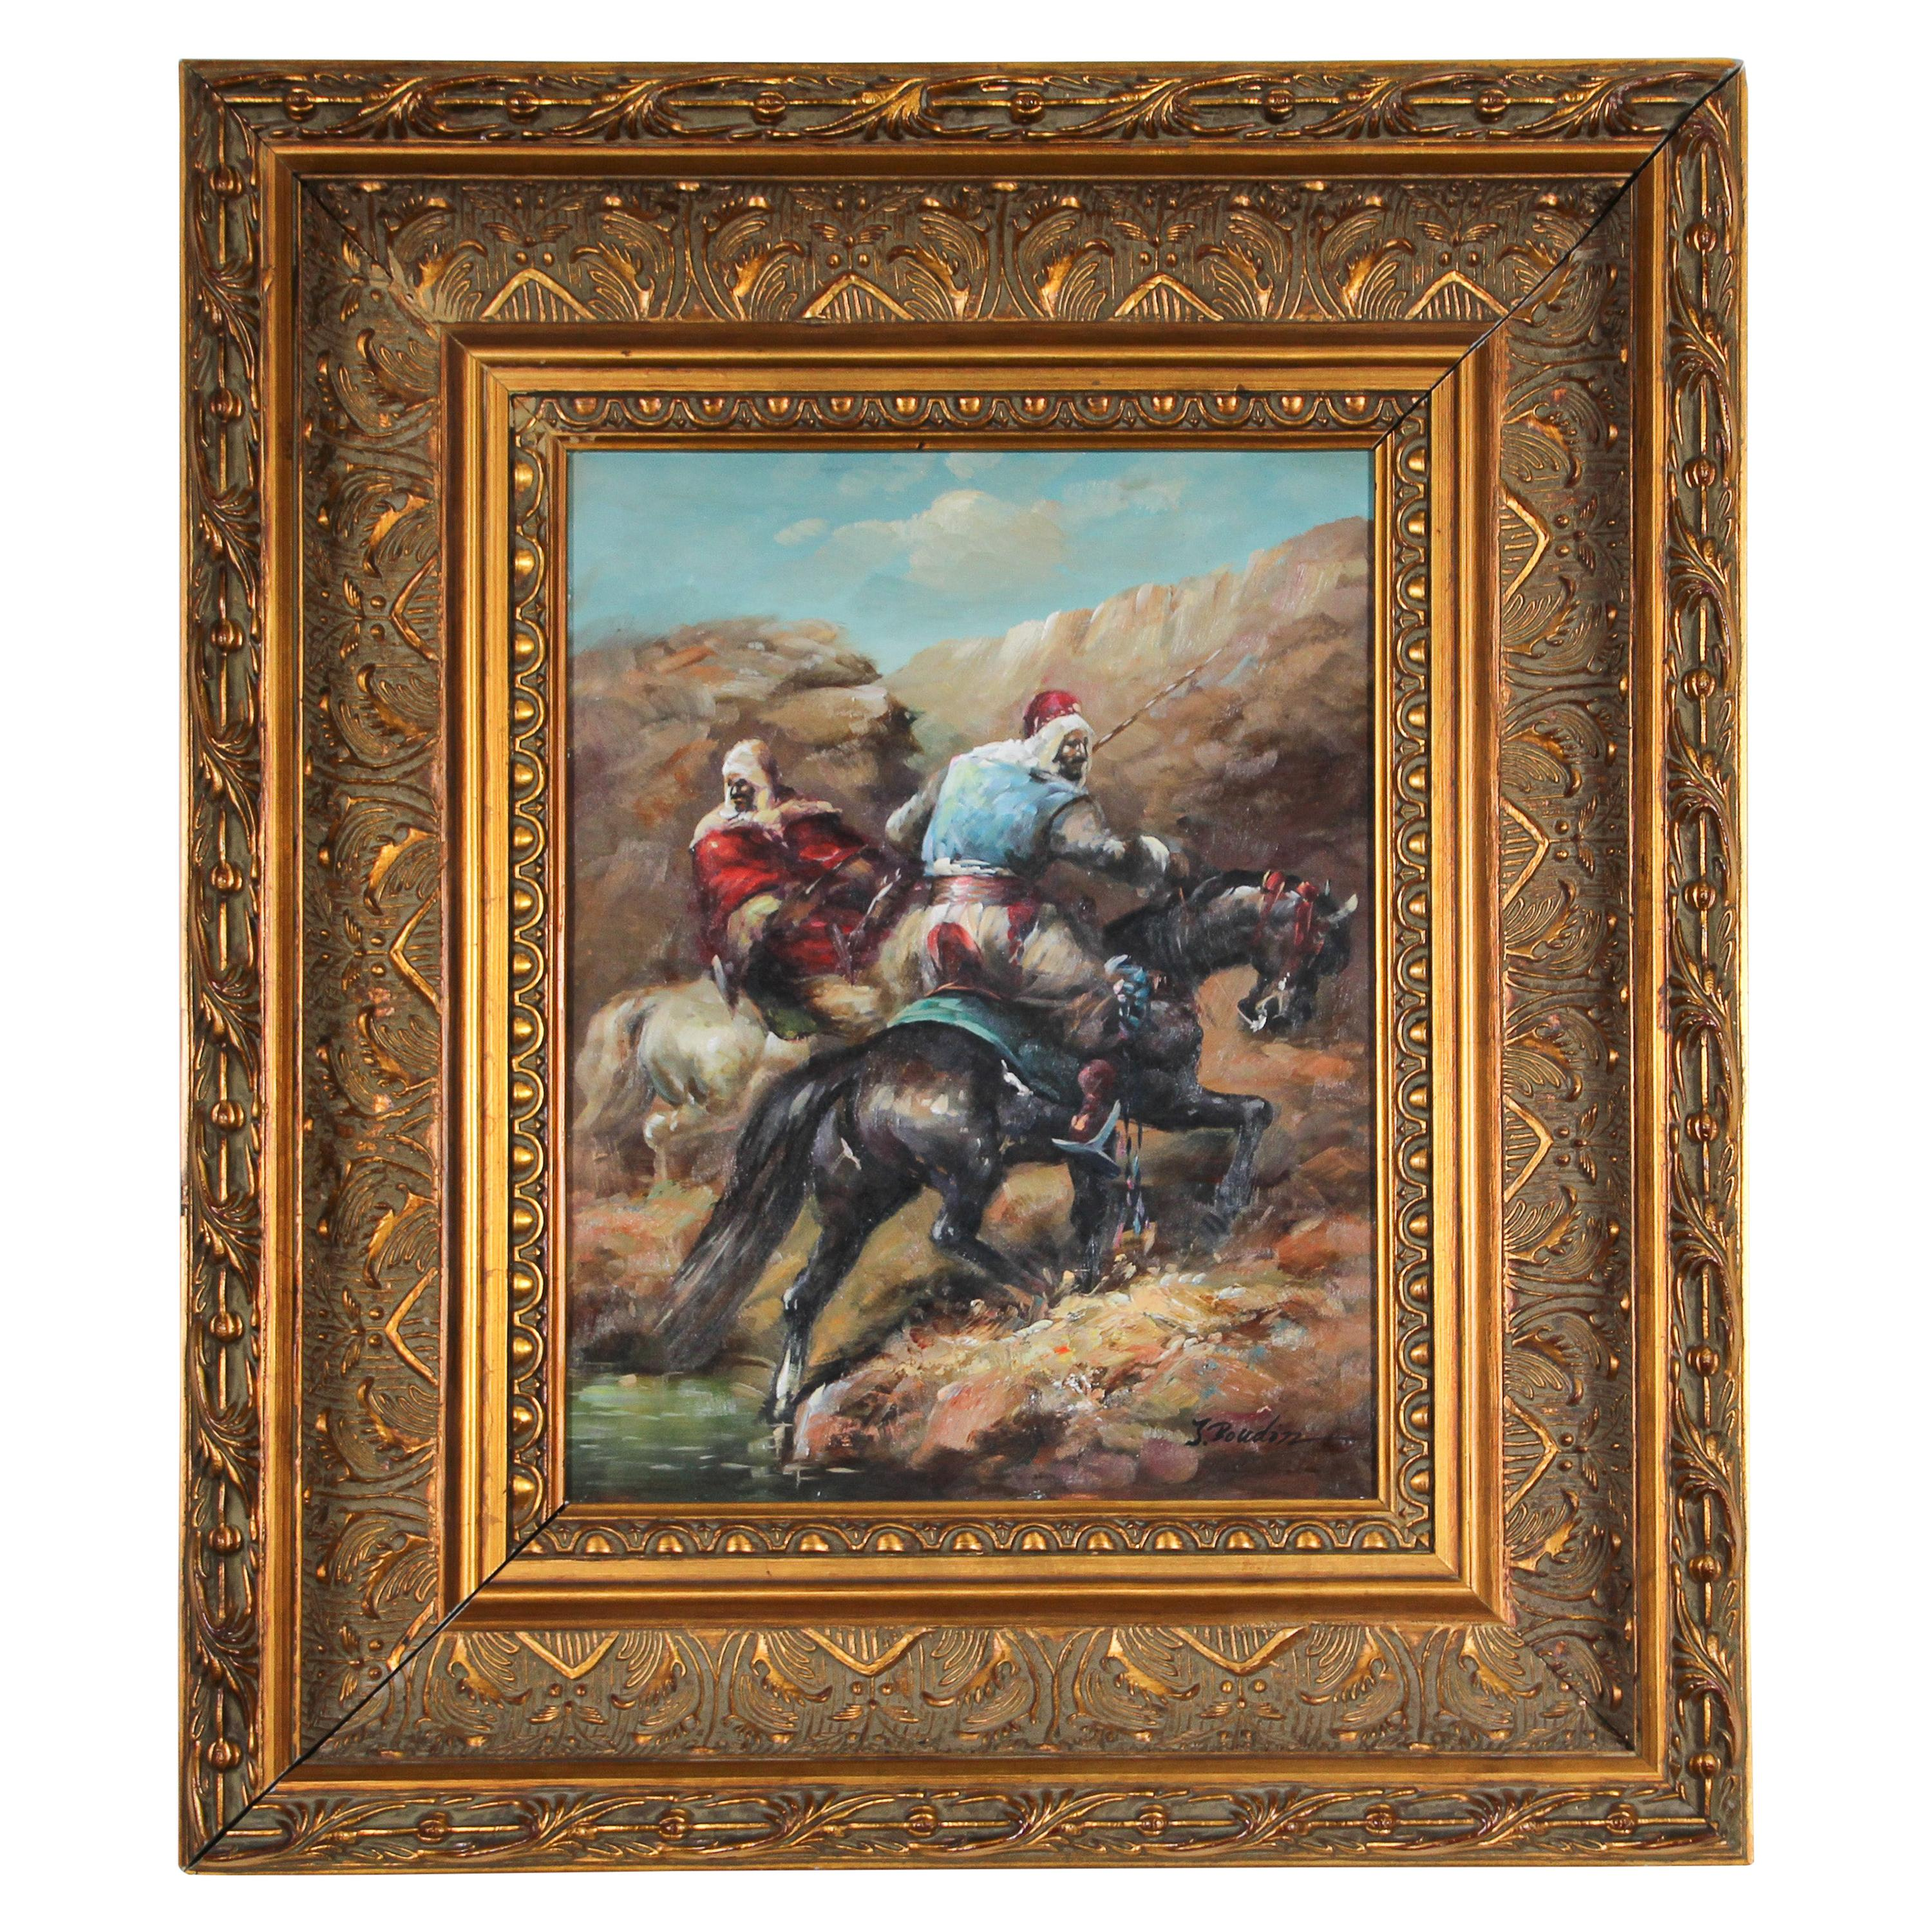 Moorish Orientalist Oil Painting of Men on Horses Framed